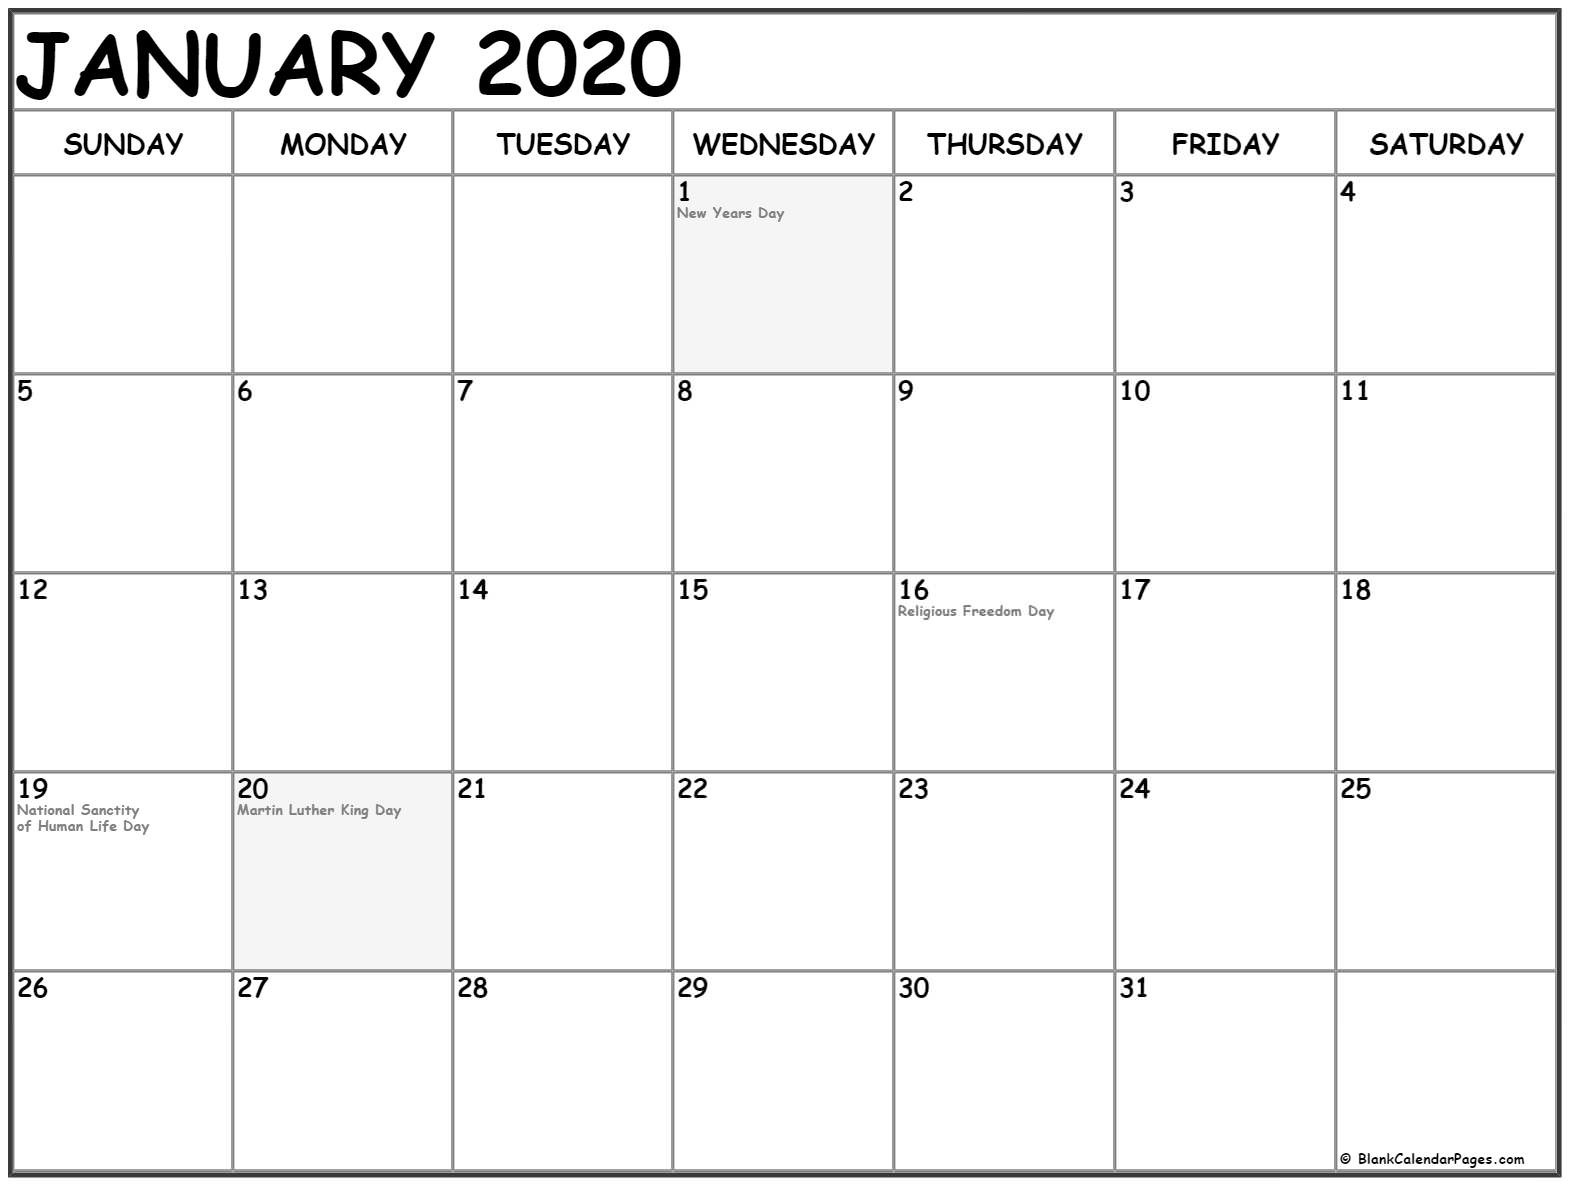 January 2020 Calendar Printable Templates Holidays - July-January 2020 Calendar With Holidays